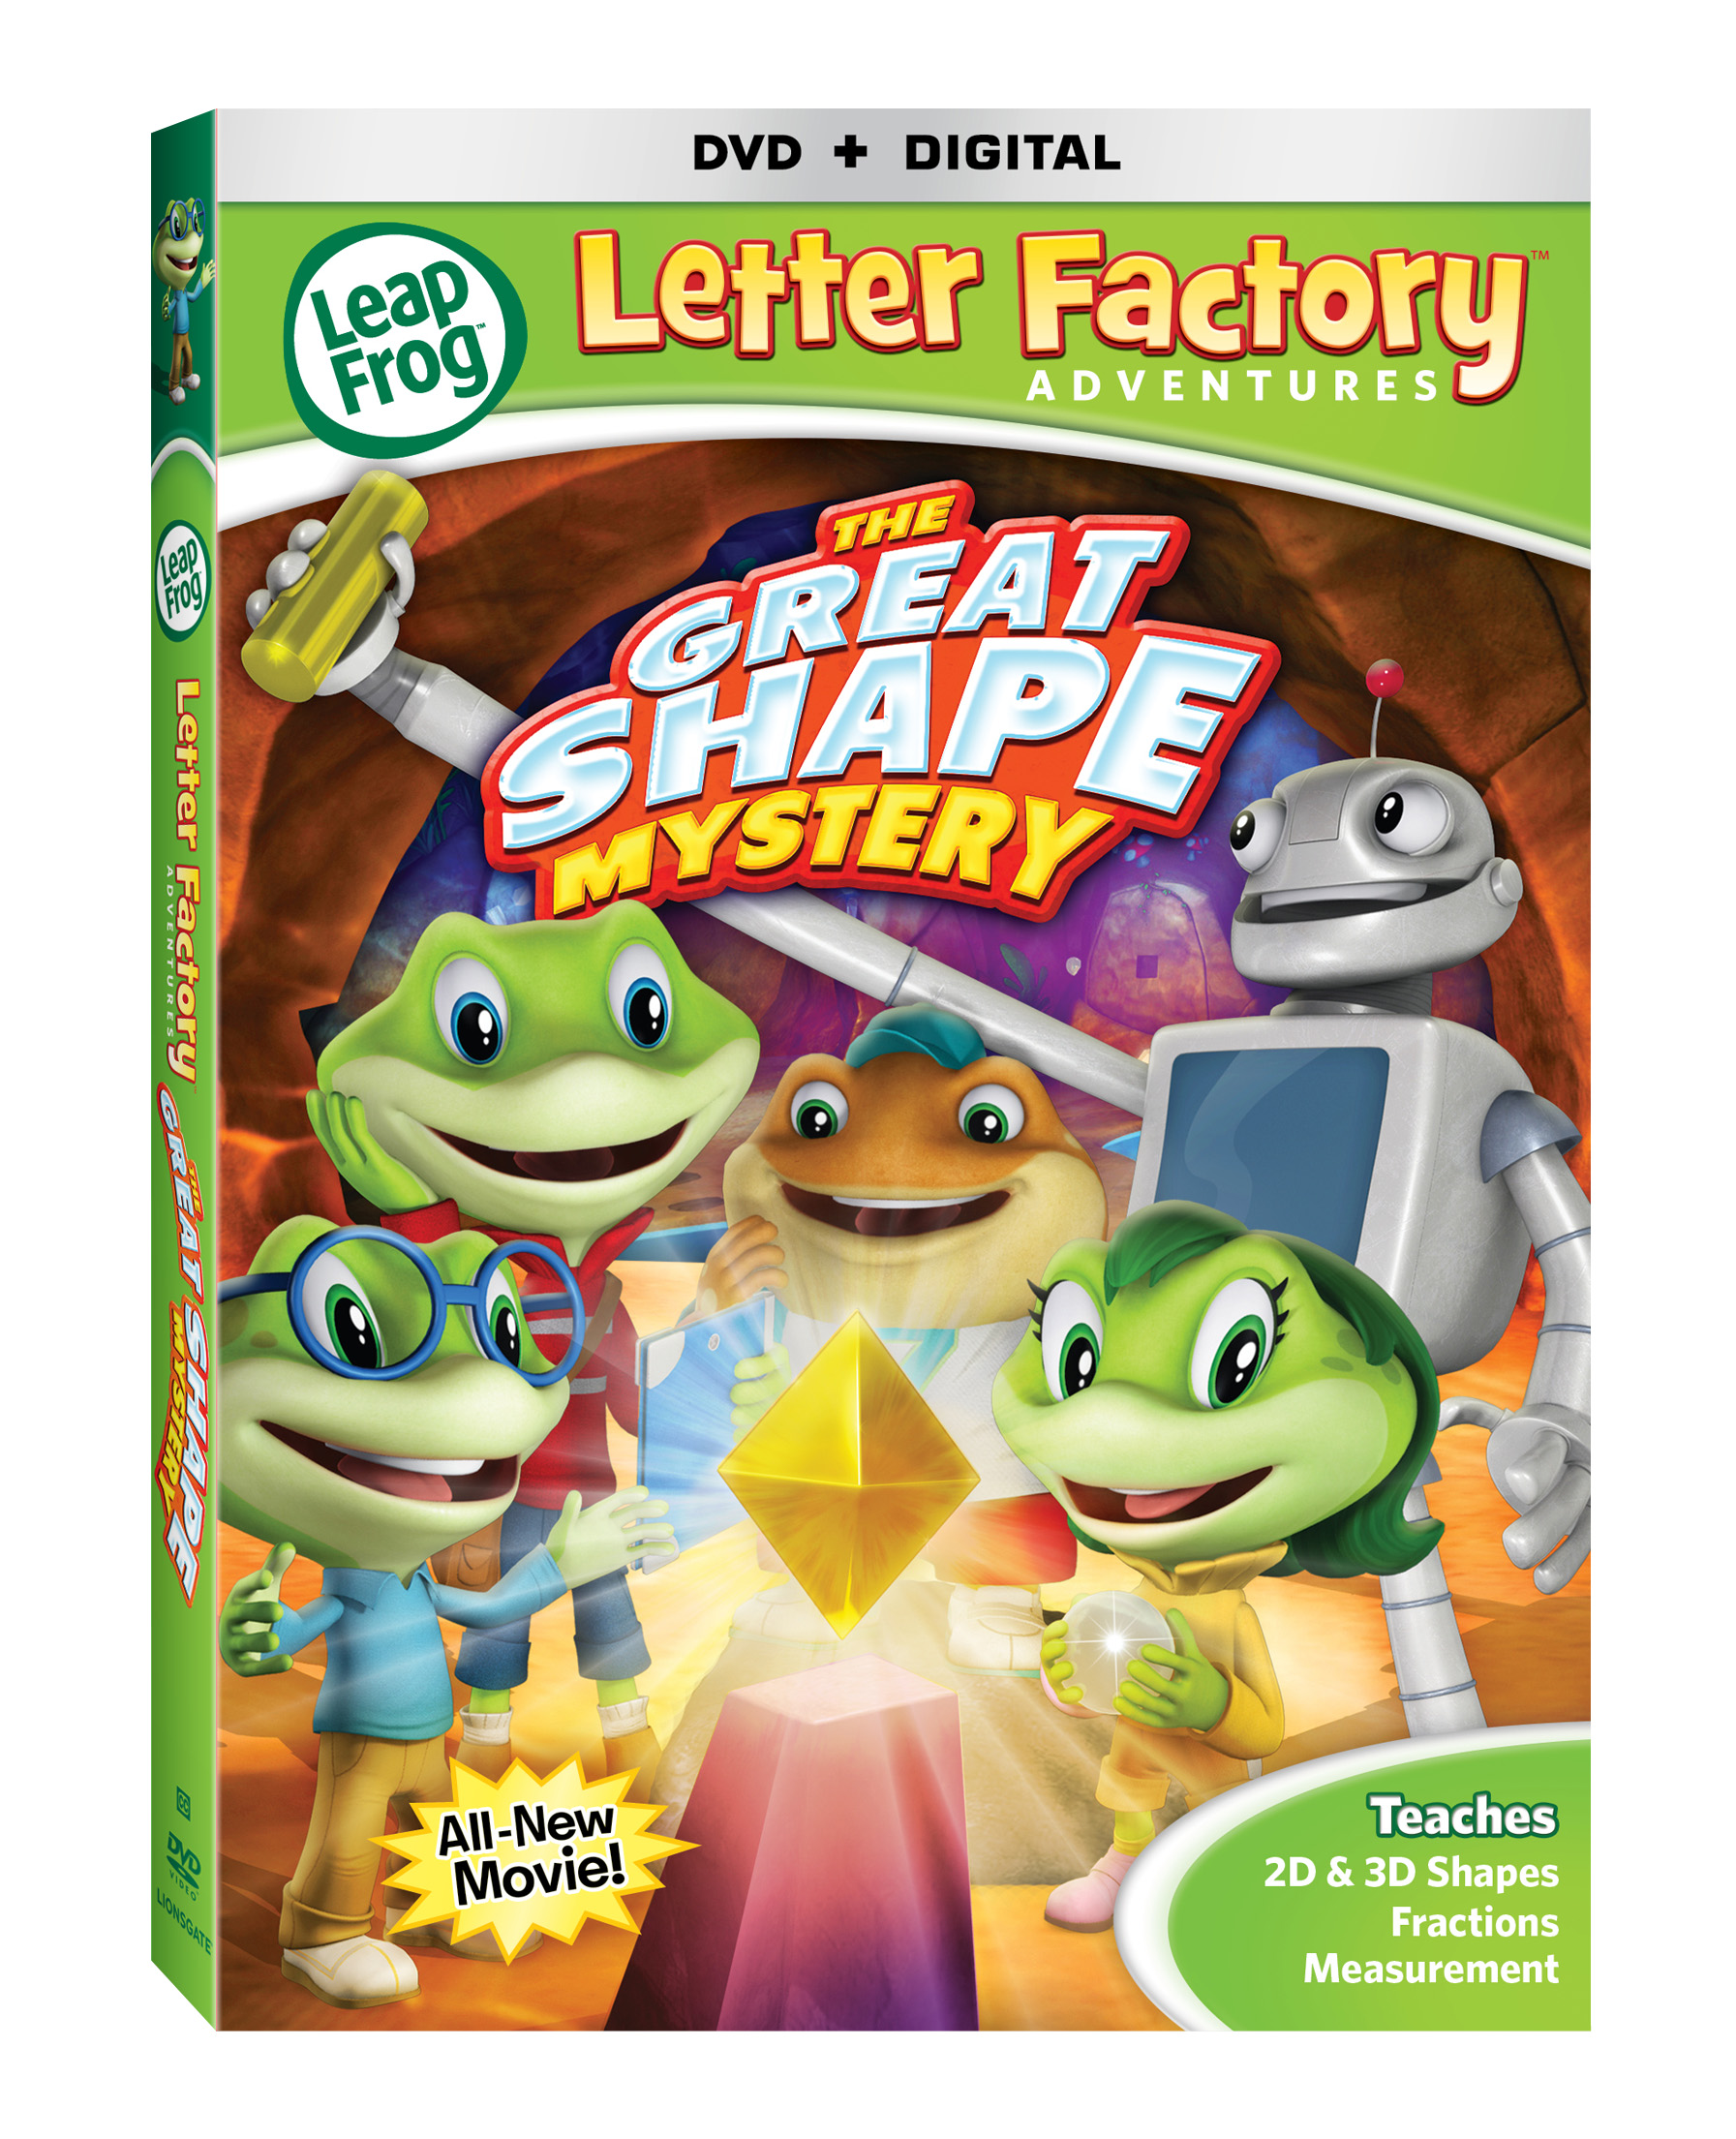 used leapfrog letterfactory dvd 3 flickr photo gift guide for toddlers 2015 theresa s reviews 342